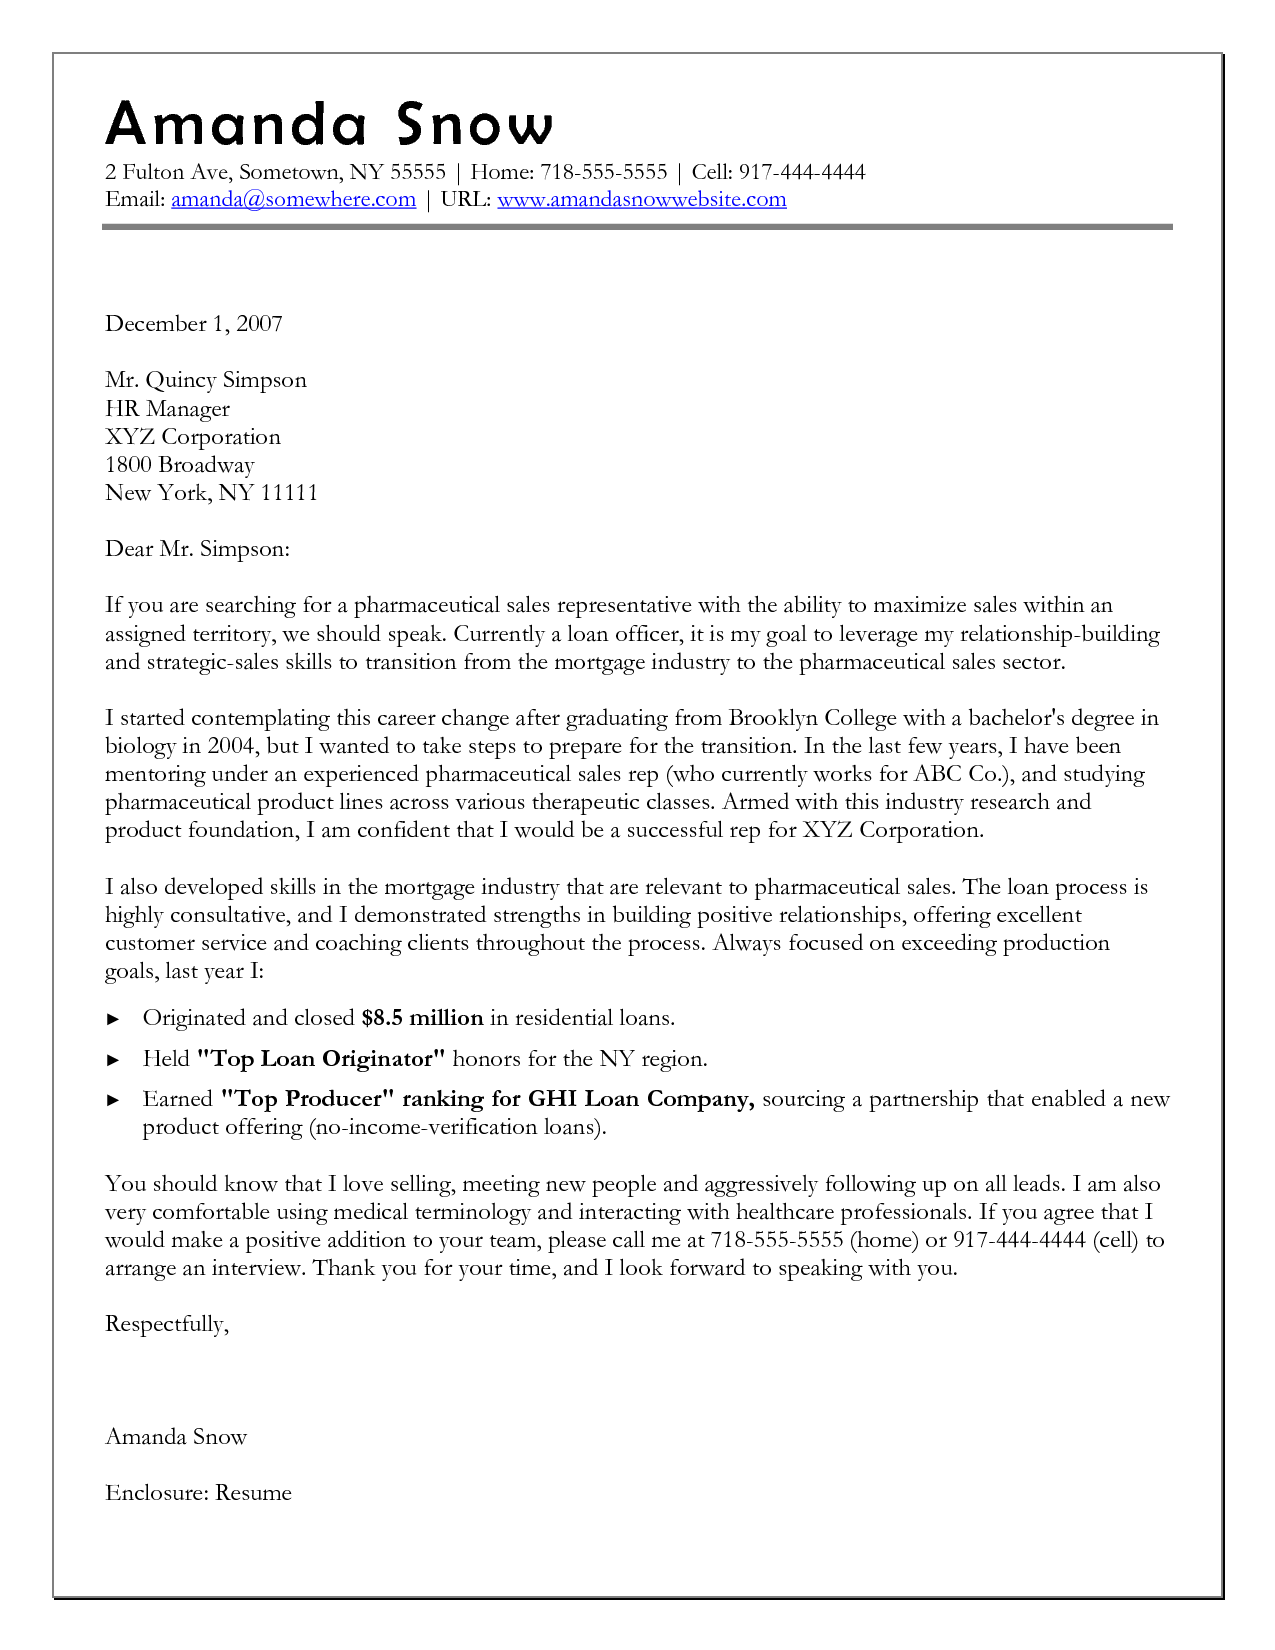 sample cover letter for manufacturing job - 10 sample of career change cover letter